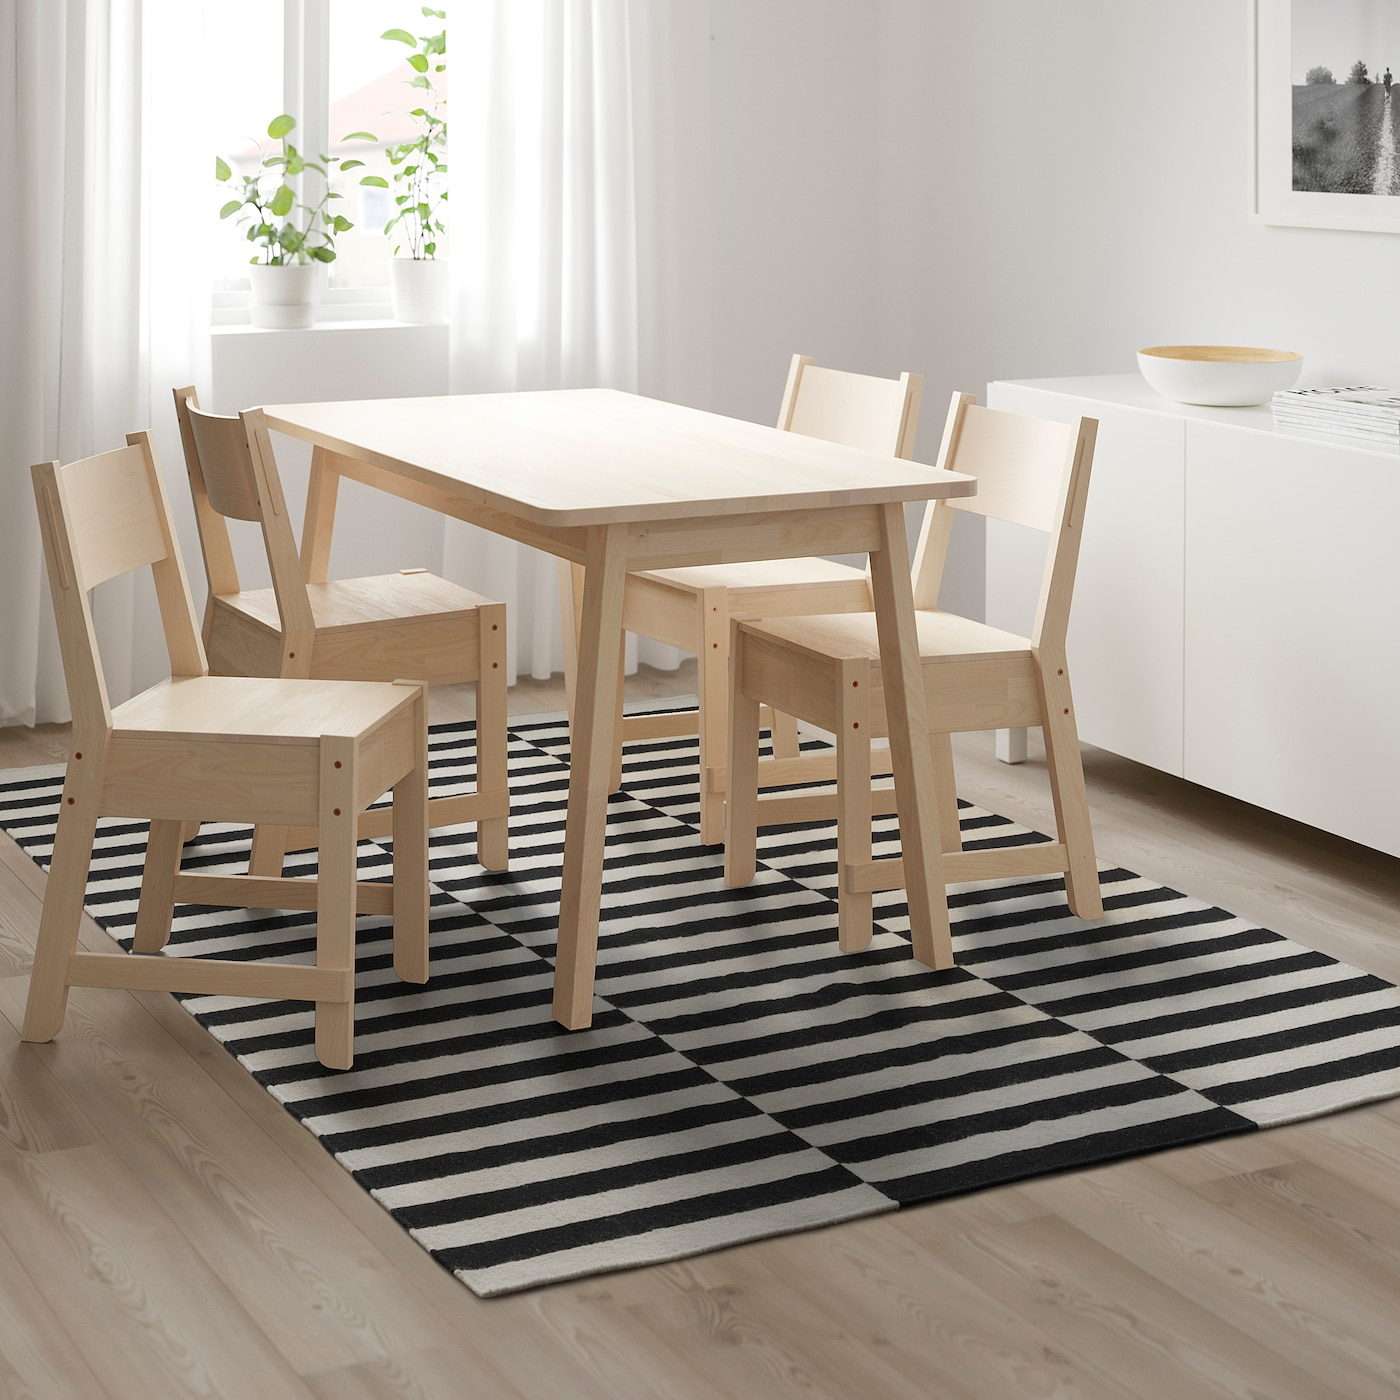 These Versatile IKEA Rugs Have True Design Power